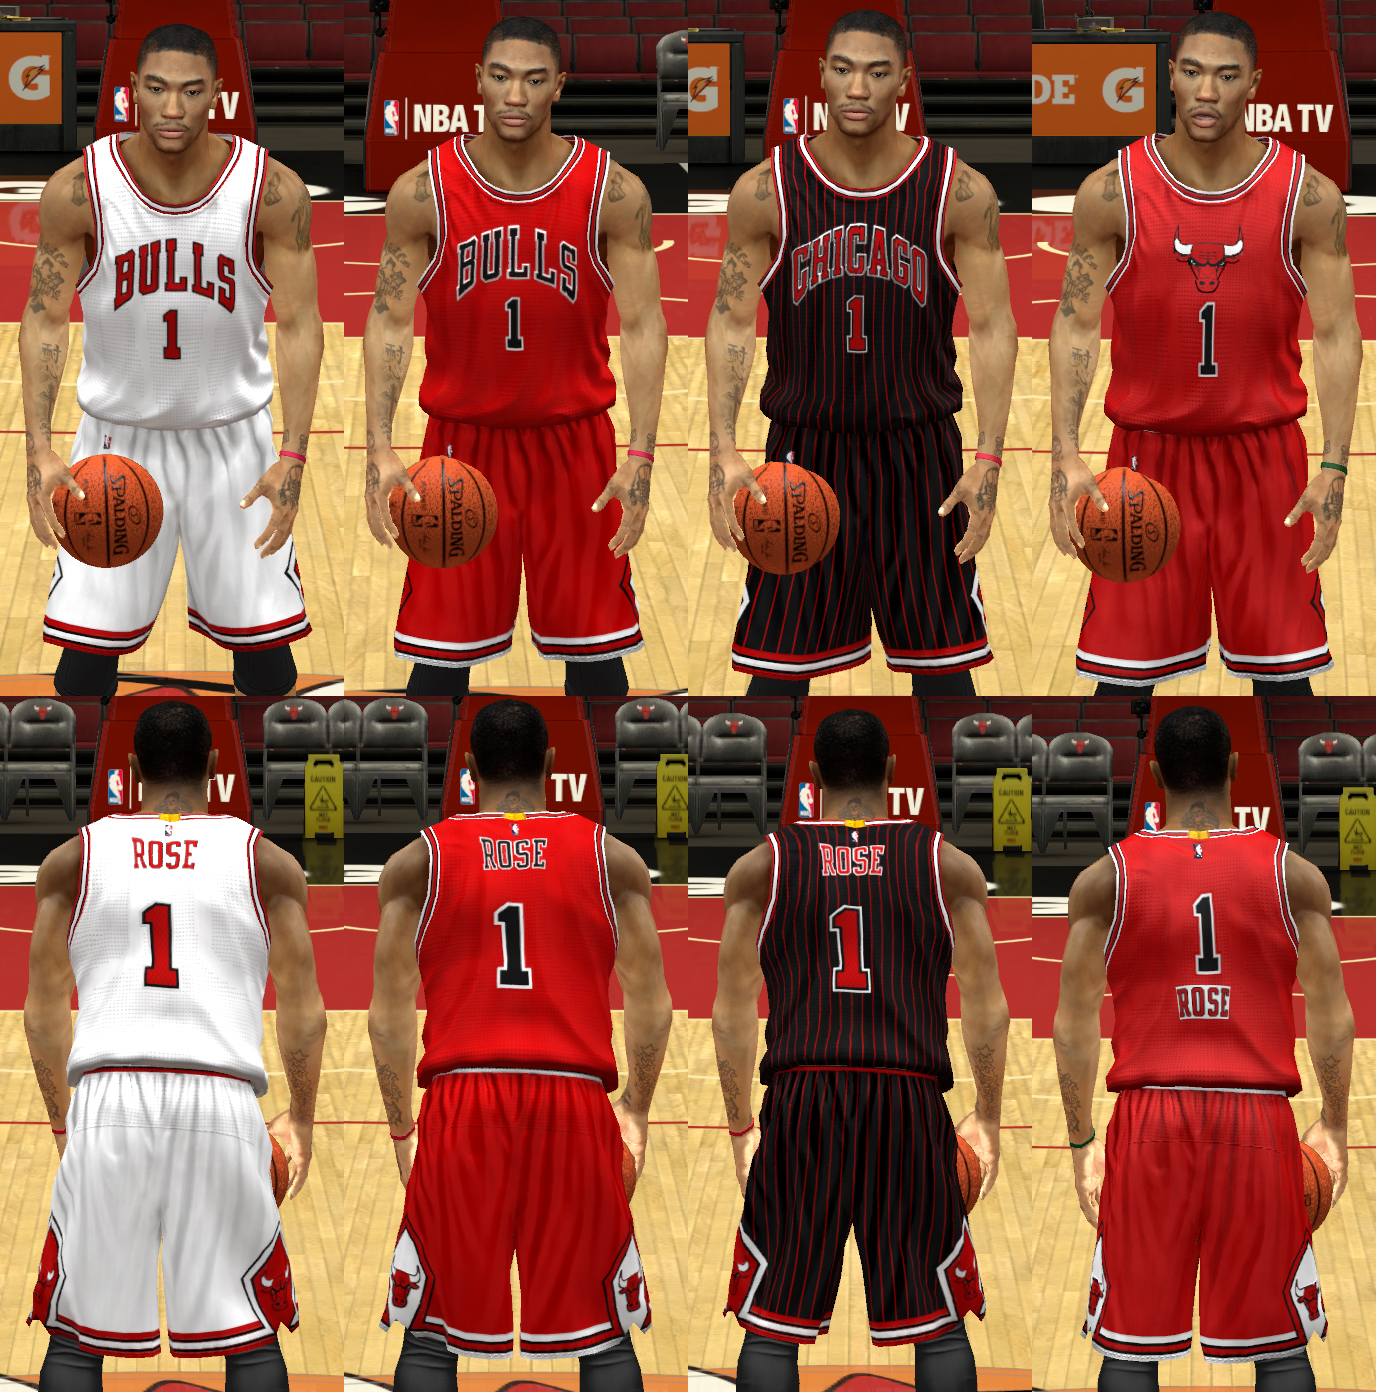 43dcc6b6fd2 NLSC Forum • Downloads - 2015 Chicago Bulls Uniforms